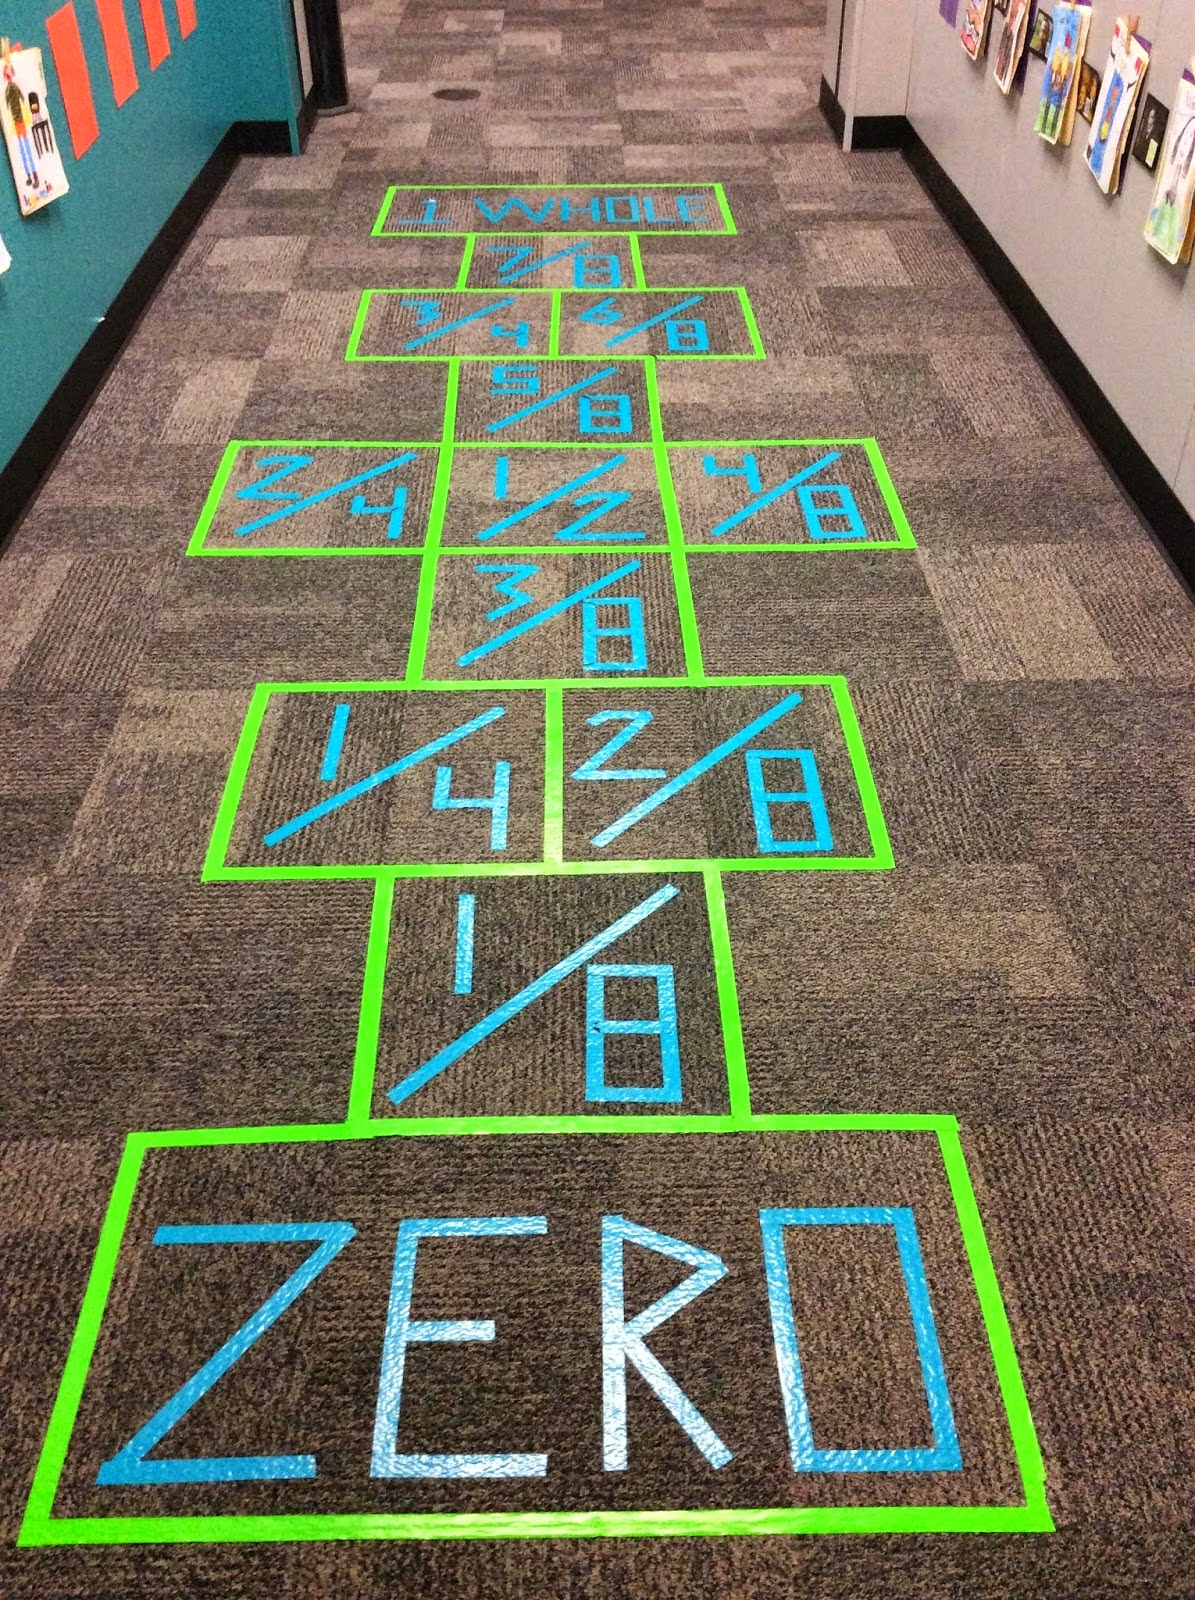 How To Add Mixed Fractions Bbc Bitesize By Steve Alten Fraction Hopscotch  In The Maths Corridor From Cisdmathmusingsspot Resourceaholic: Thoughts On